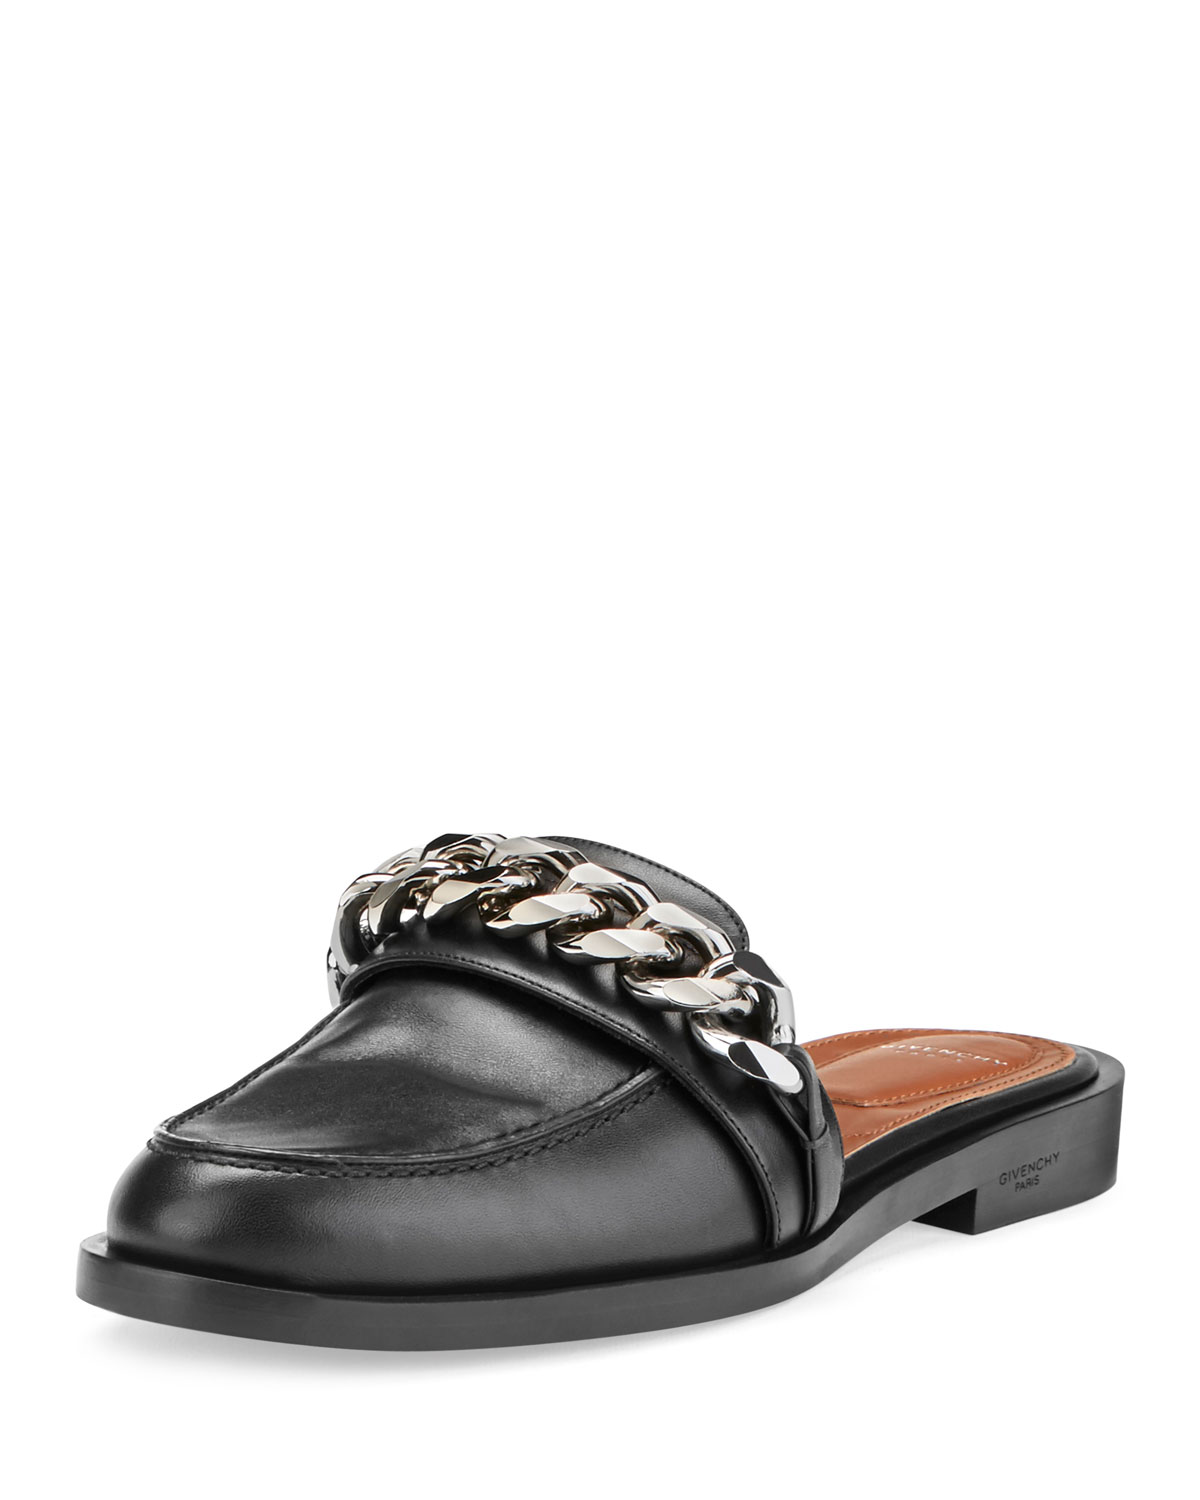 876f8c40bcc4 Givenchy Chain Leather Loafer Mule